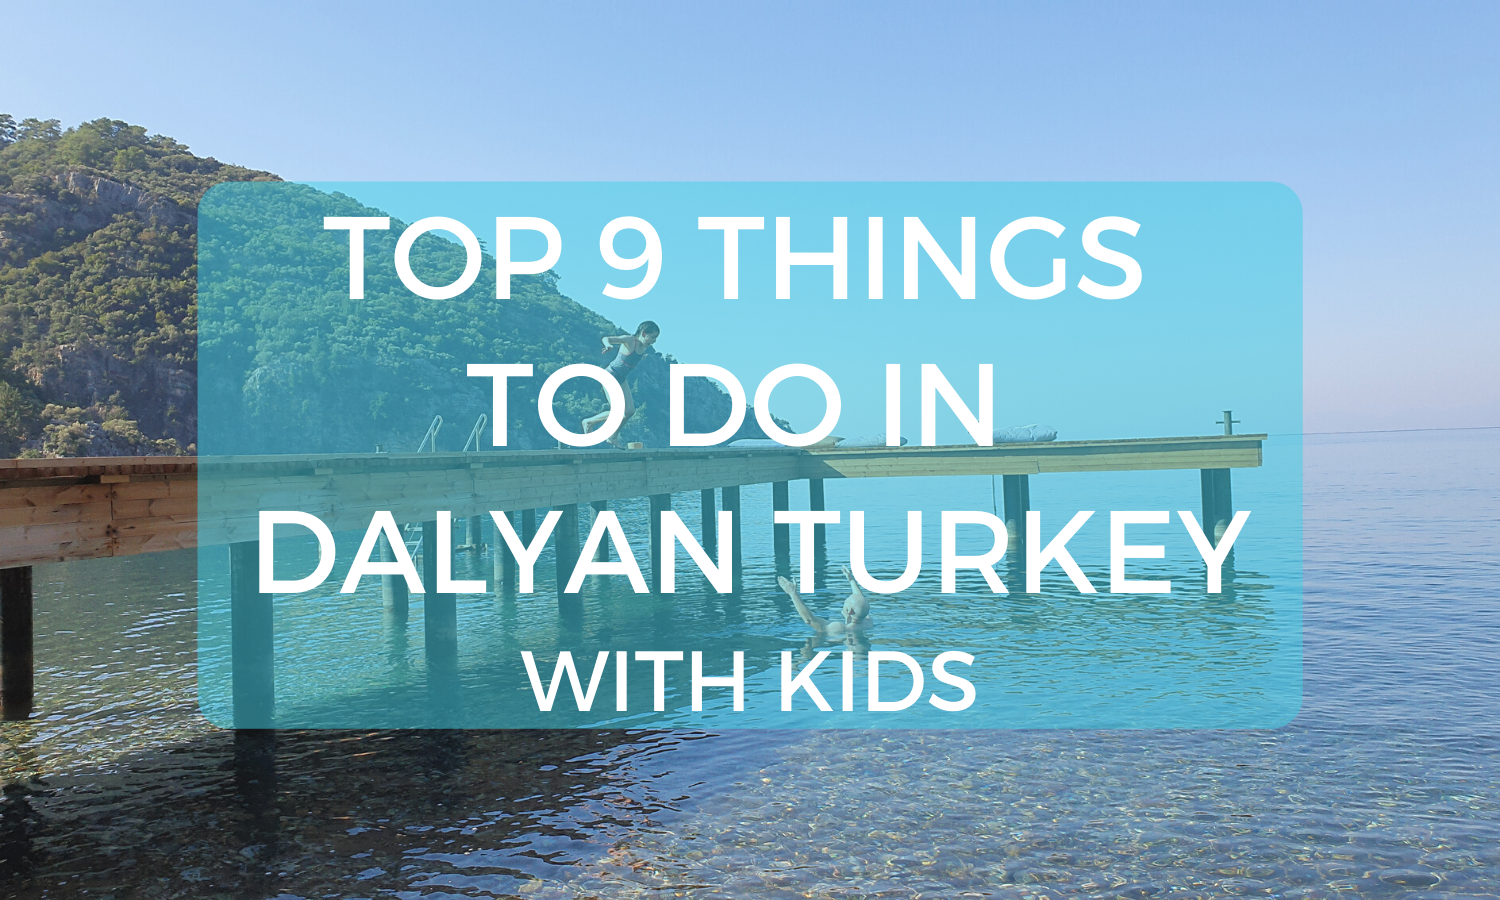 Top 9 Things to Do In Dalyan Turkey With Kids